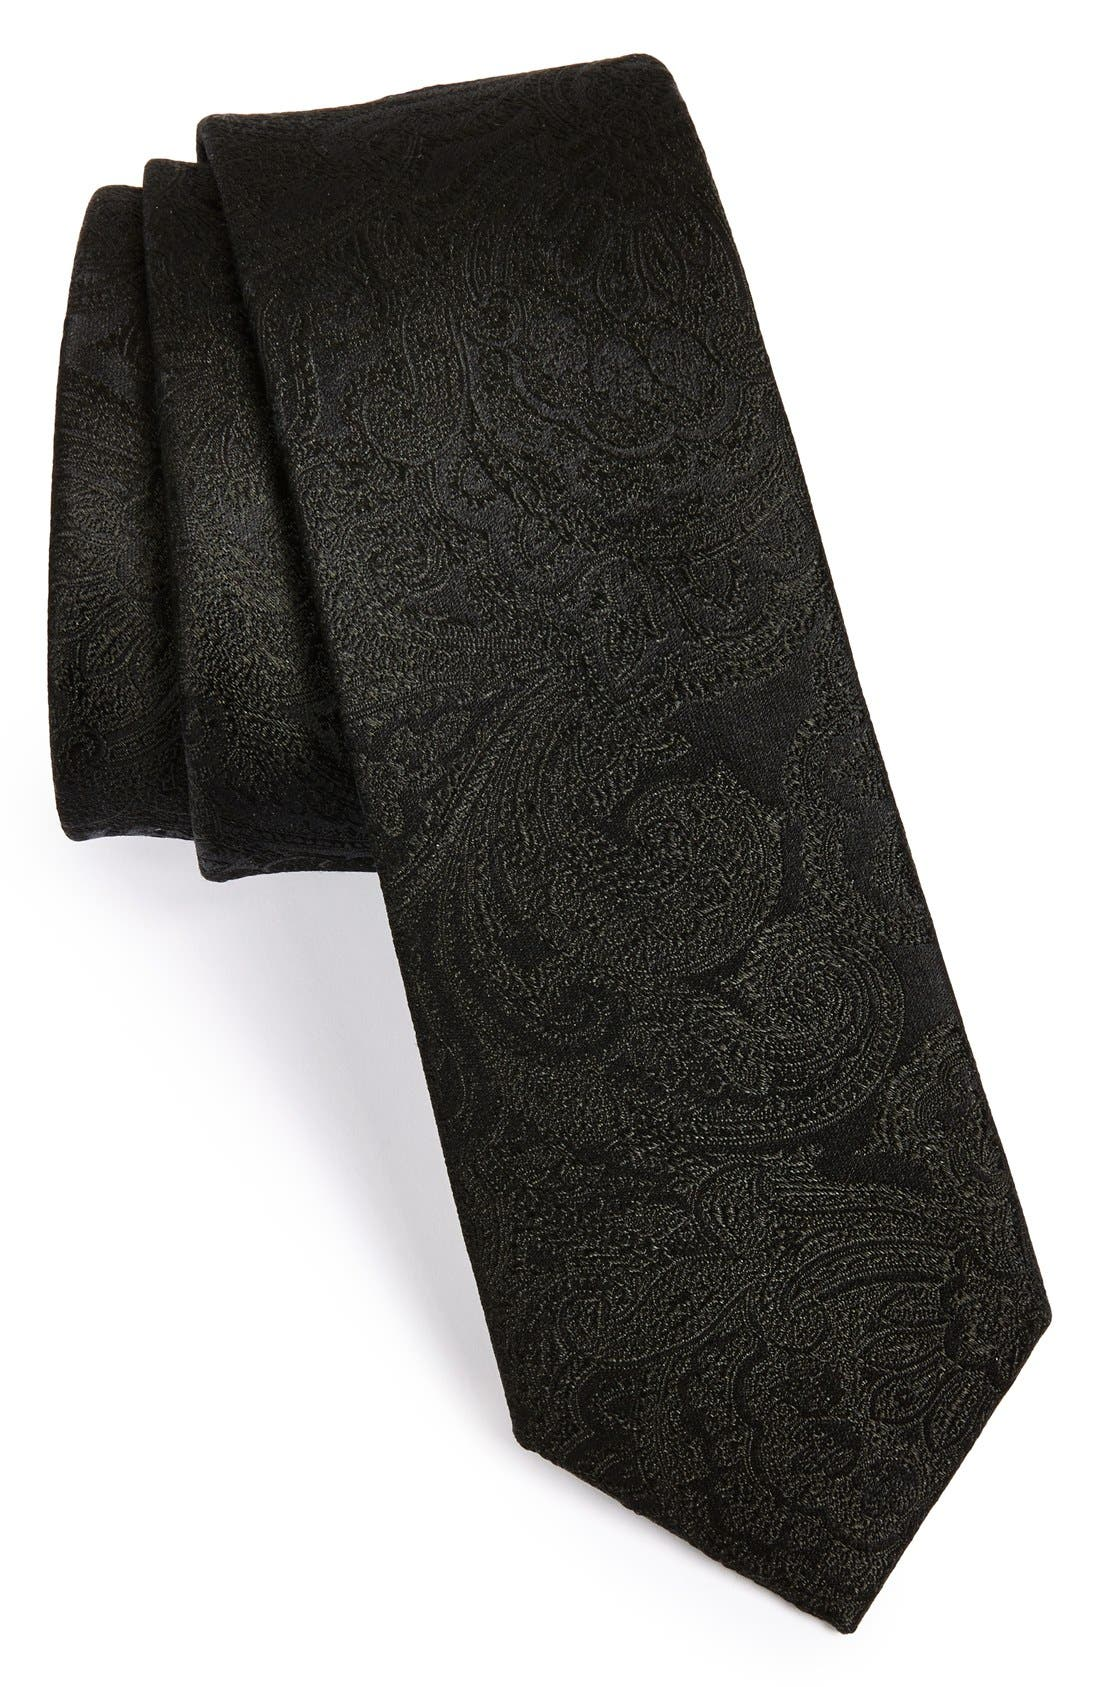 Alternate Image 1 Selected - The Tie Bar Silk Paisley Tie (Online Only)